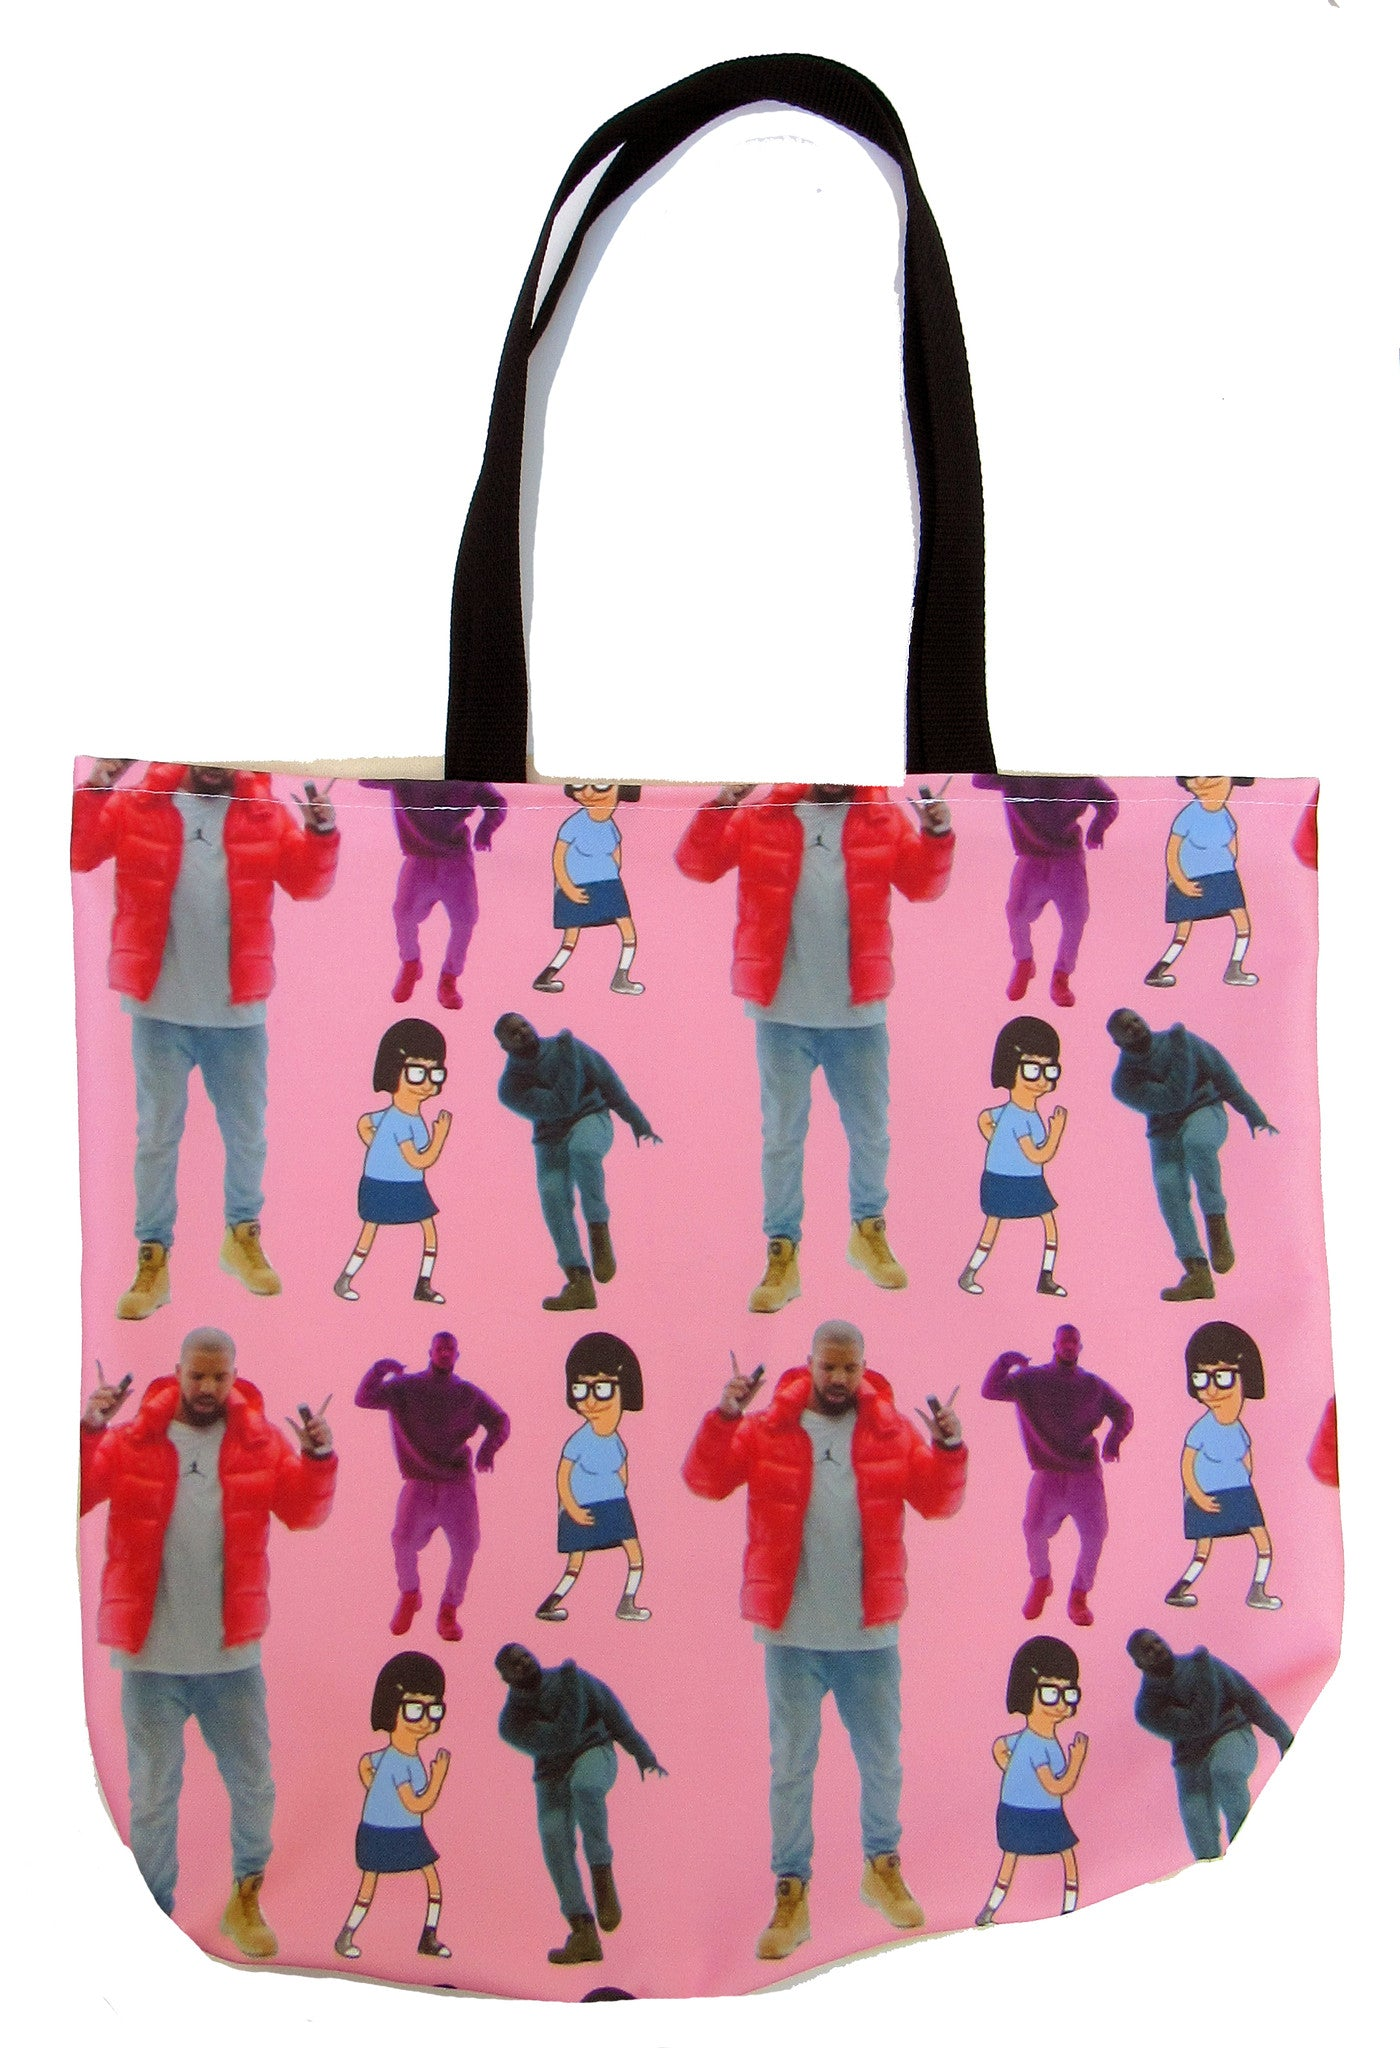 1-800 Dance Custom Printed Canvas Tote Bag – More Me Know d94e957f8